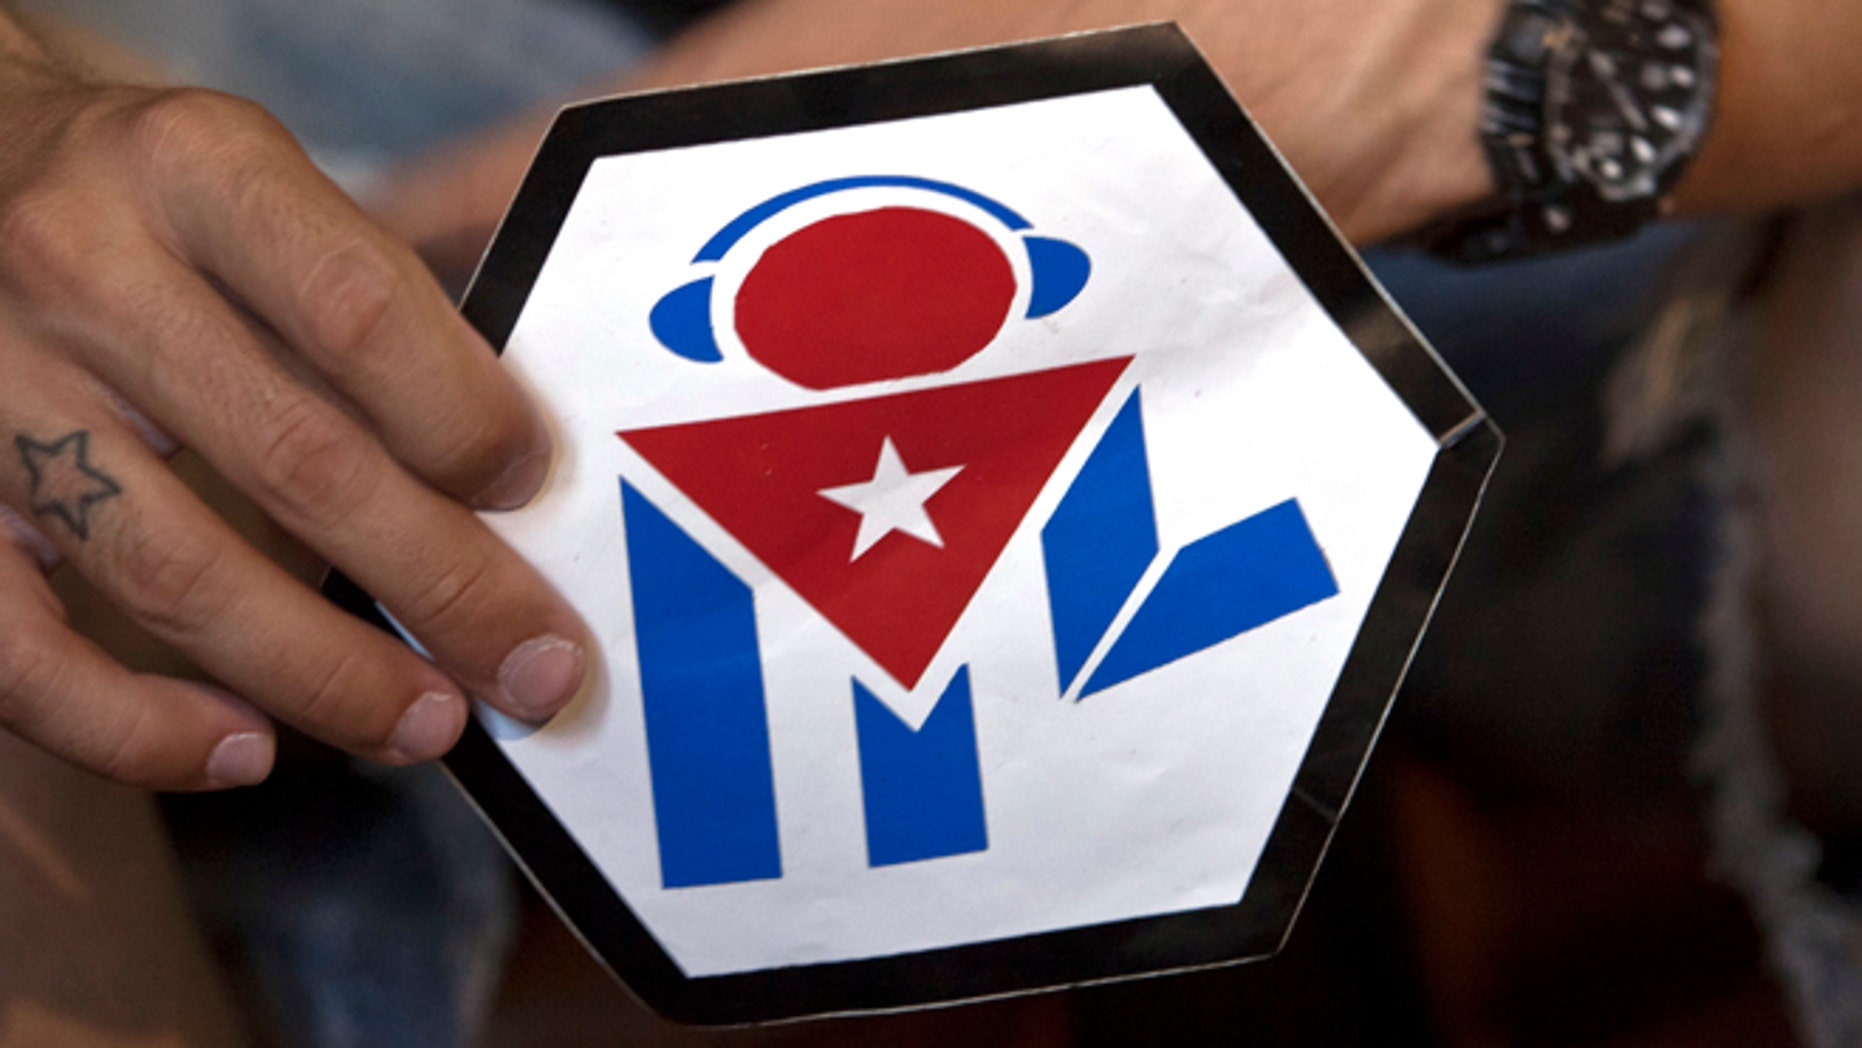 """In this July 11, 2014, photo, Manuel Barbosa, 25, shows the logo of his """"Revolution"""" audiovisual project during an interview with The Associated Press in Santa Clara, Cuba. Fernando Murillo contacted Barbosa, a founder of the group, while working on a clandestine operation by the Obama administration that dispatched Latin American youth to Cuba under the cover of health and civic programs to provoke unrest. Barbosa said he was initially open to collaboration with the foreigners but was never told they were working for the U.S. """"They presented themselves as a non-governmental organization,"""" Barbosa said. (AP Photo/Franklin Reyes)"""